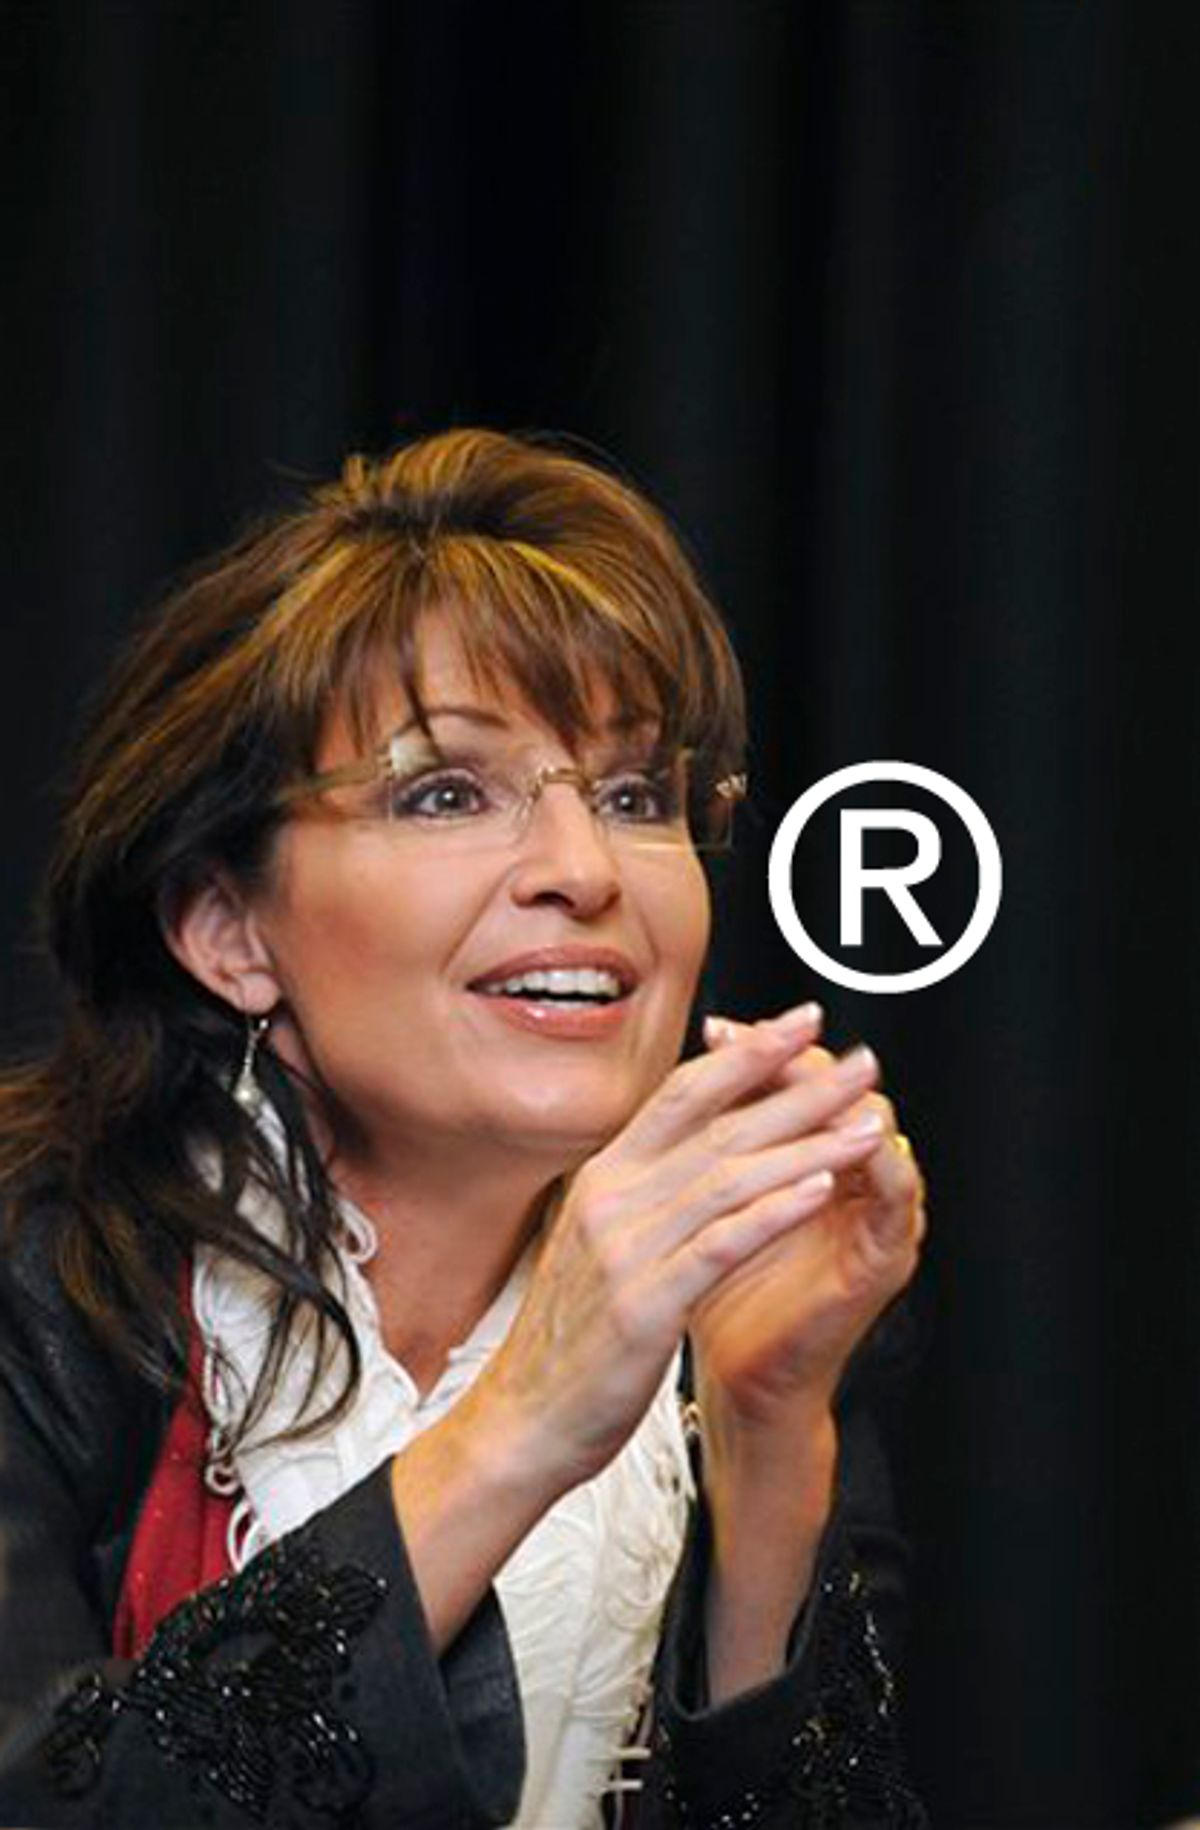 FILE - In this Dec. 3, 2010 file photo, former Alaska Gov. Sarah Palin talks during a book signing in Columbia, S.C.  This month's early under-the-radar campaigning by potential Republican challengers to President Barack Obama is a reminder of something too easily forgotten: Running for president is harder than it looks, and Obama ultimately will stand against a flesh-and-blood nominee certain to make mistakes along the way. (AP Photo/Virginia Postic, File) (Virginia Postic)